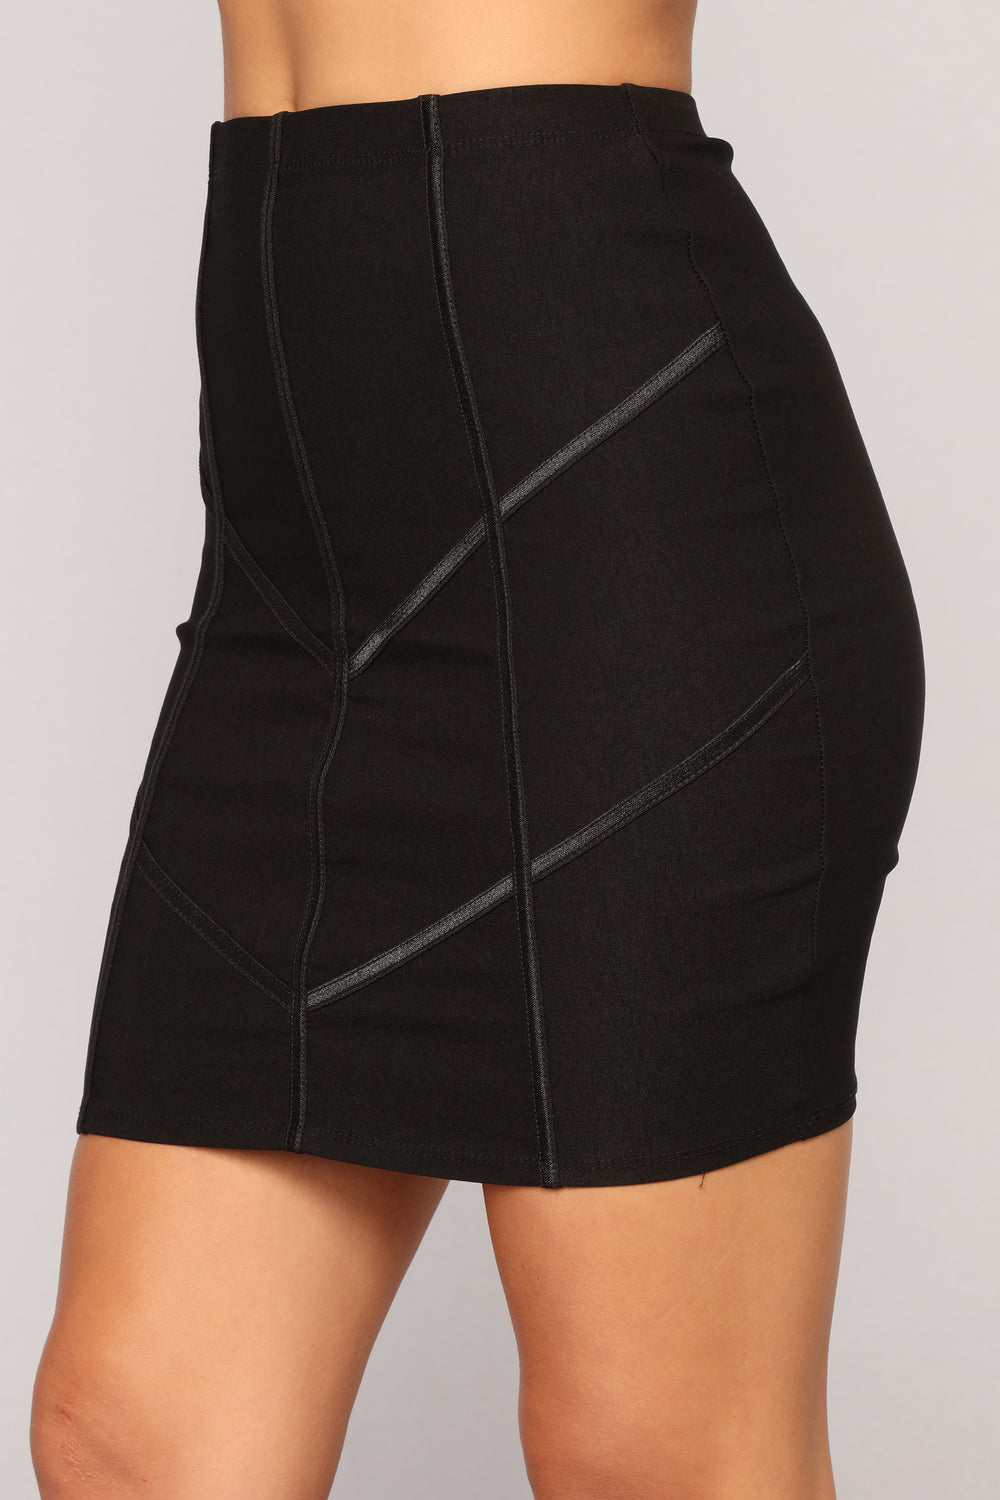 Empire State Of Mind Skirt - Black